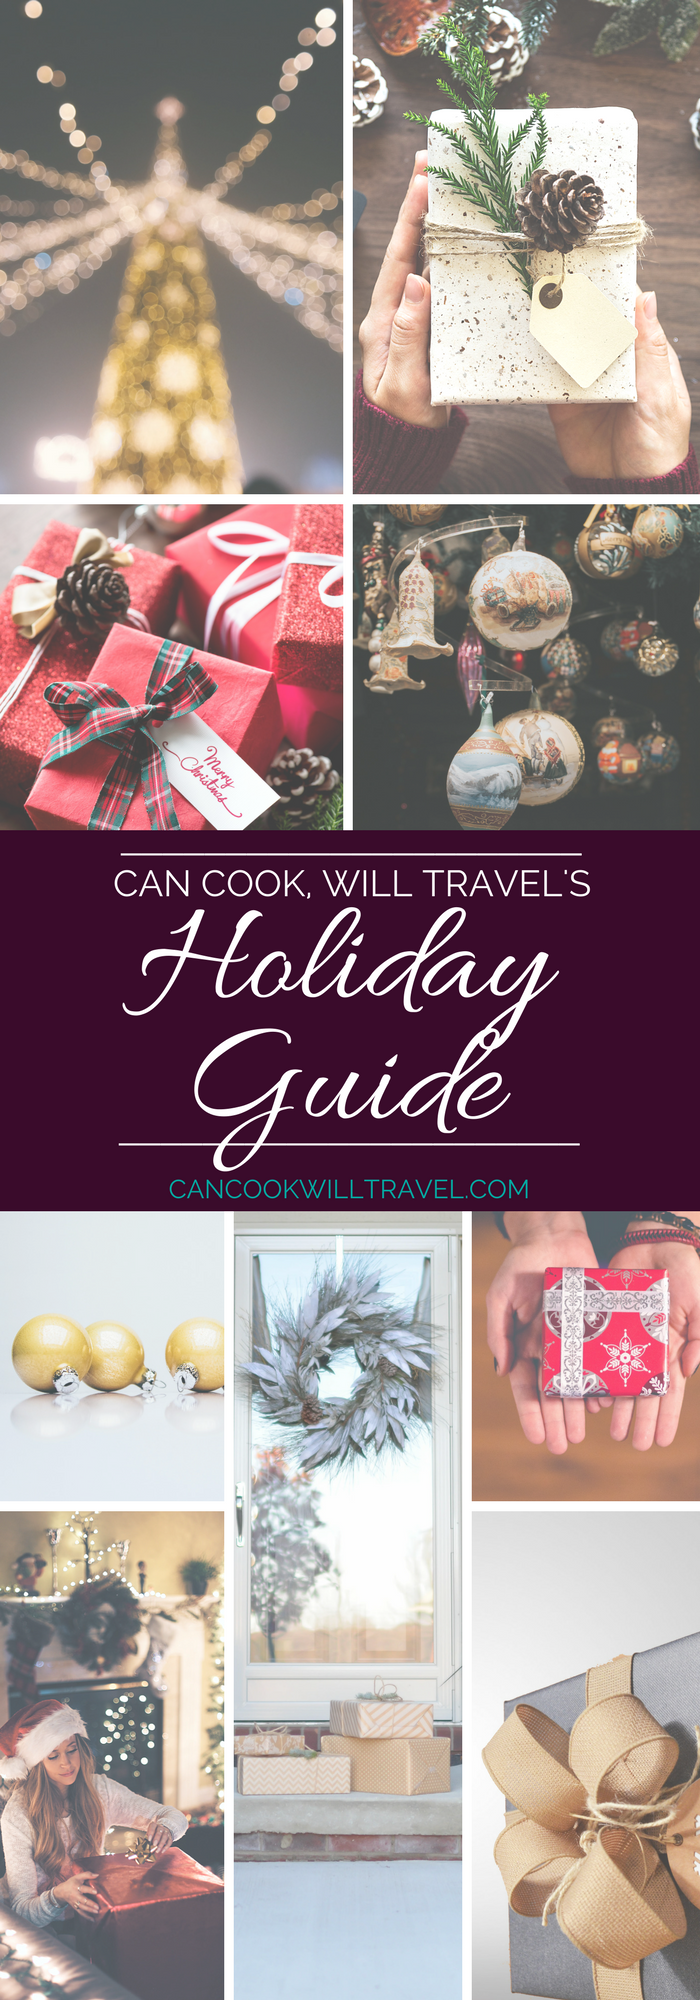 CCWT Holiday Guide 2017_Tall